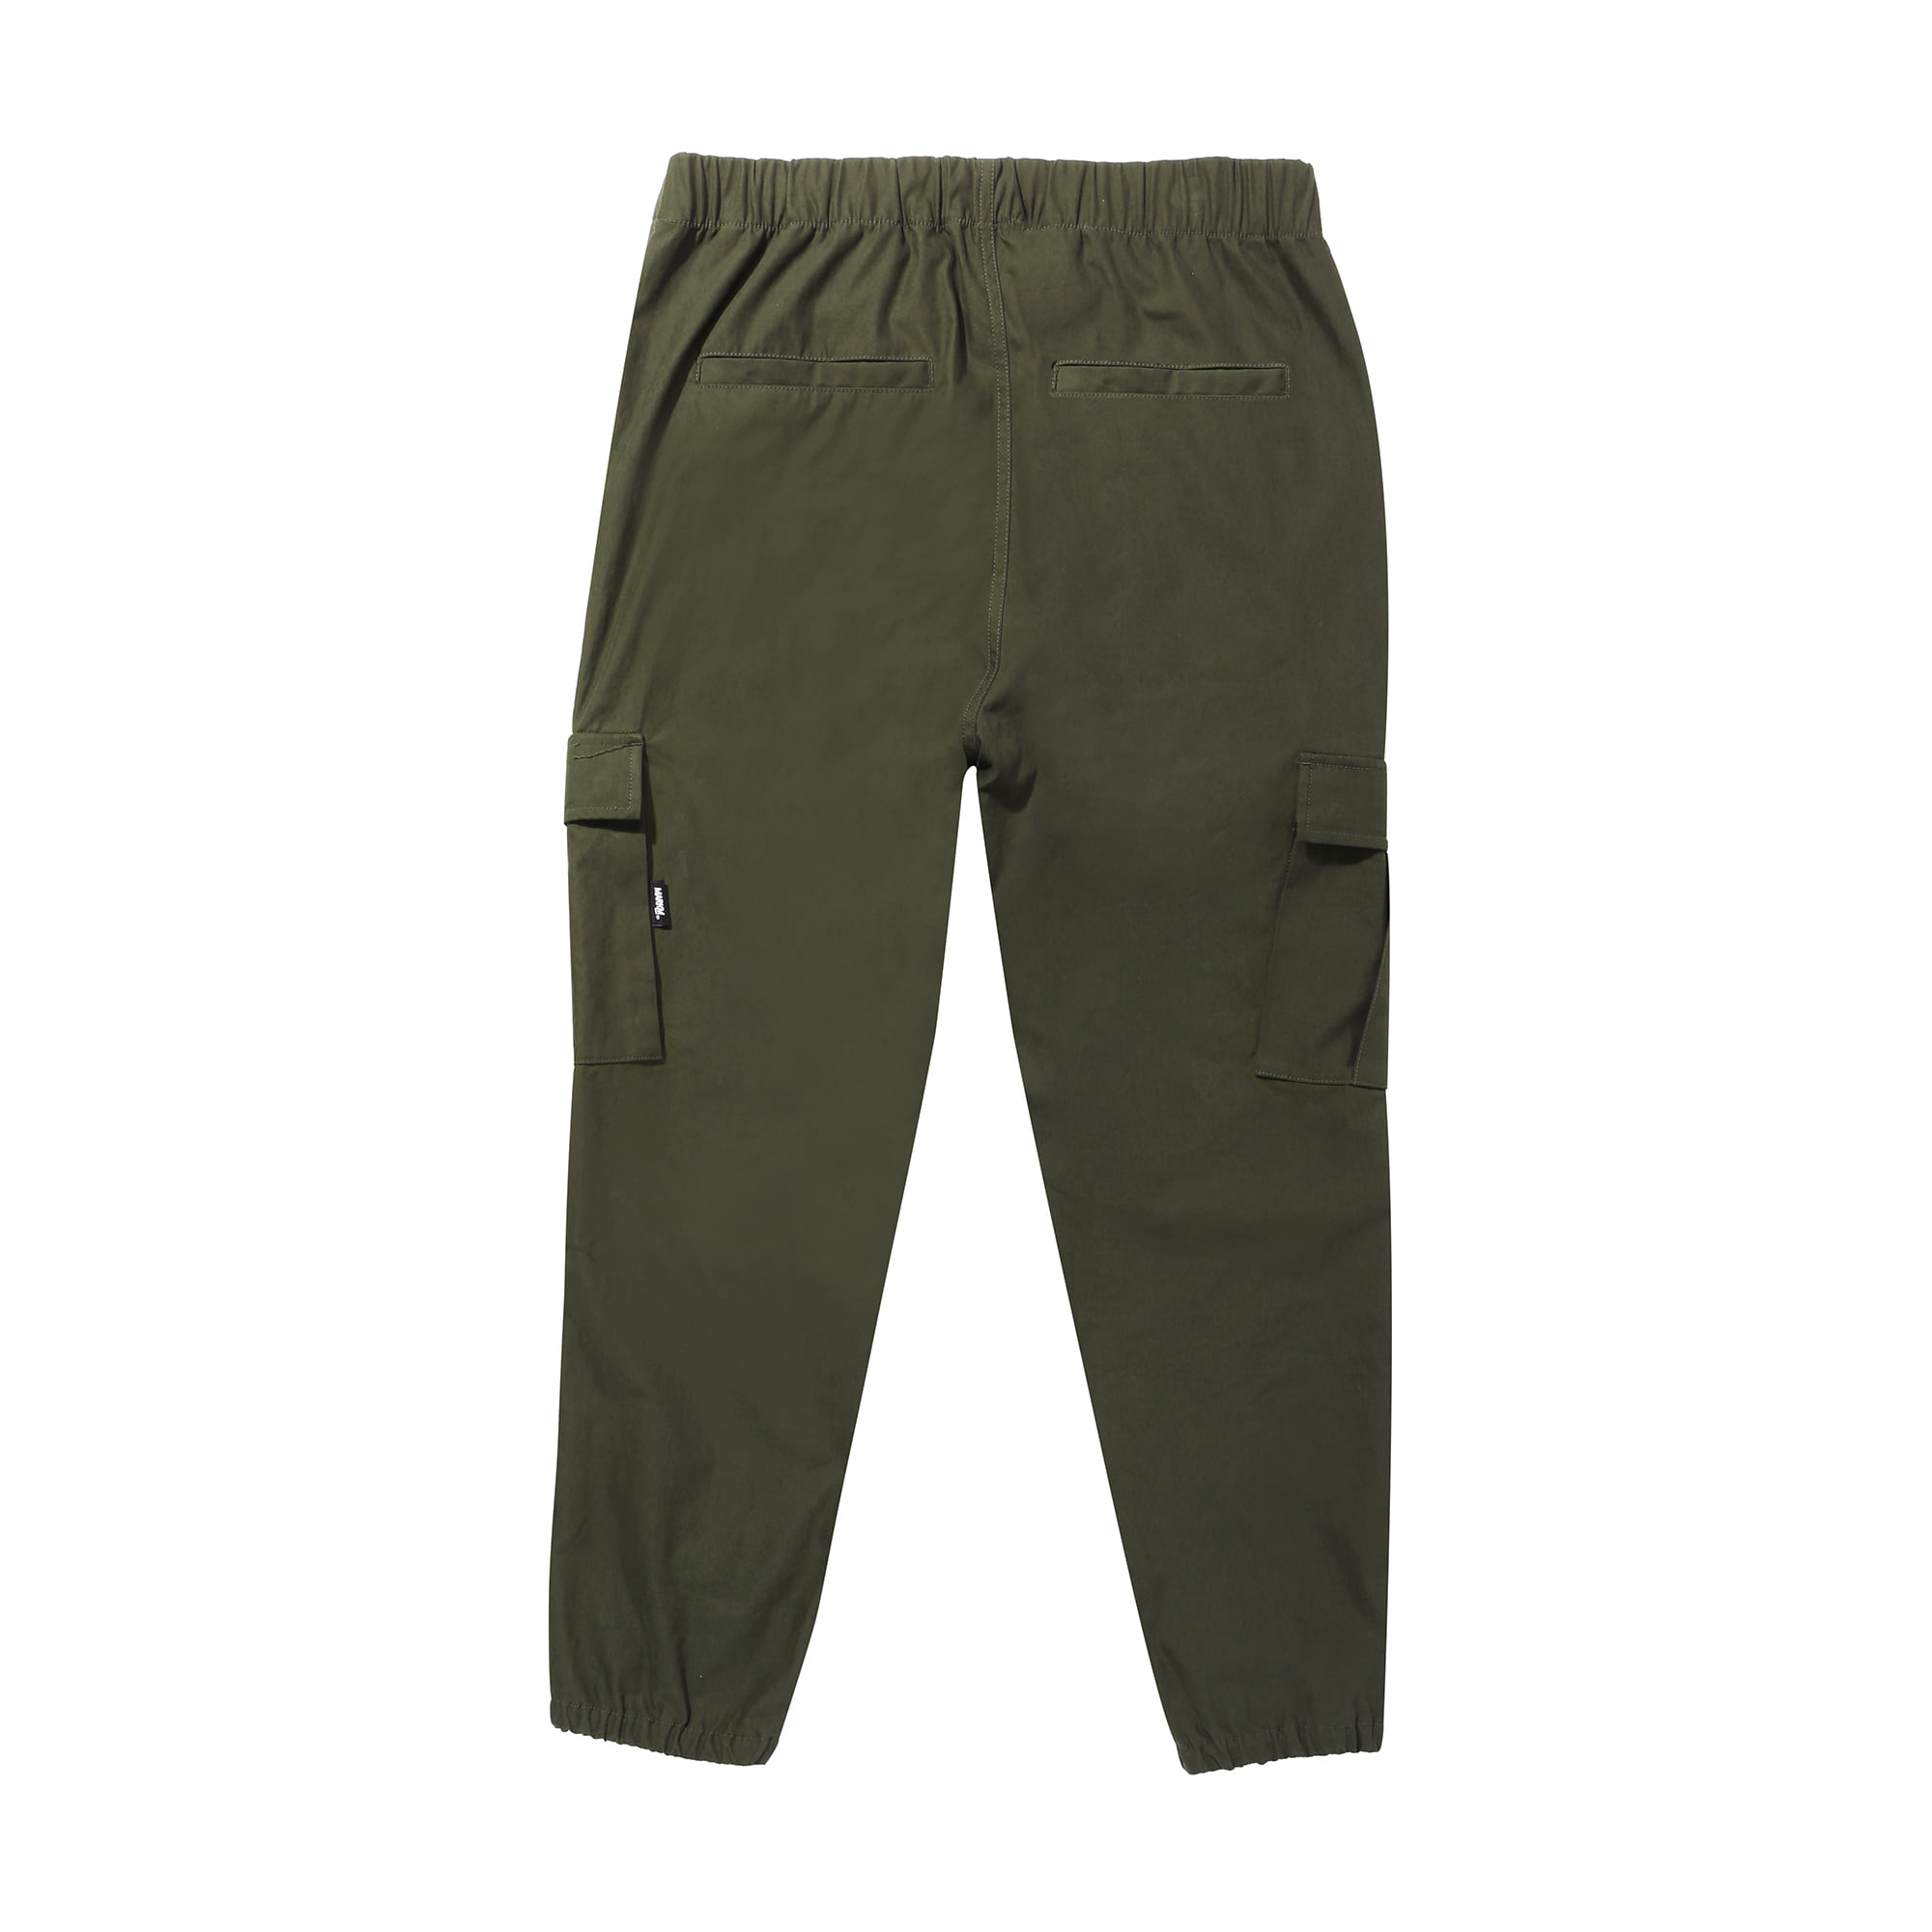 19FW MM Cargo Jogger Pants MYFAH4511